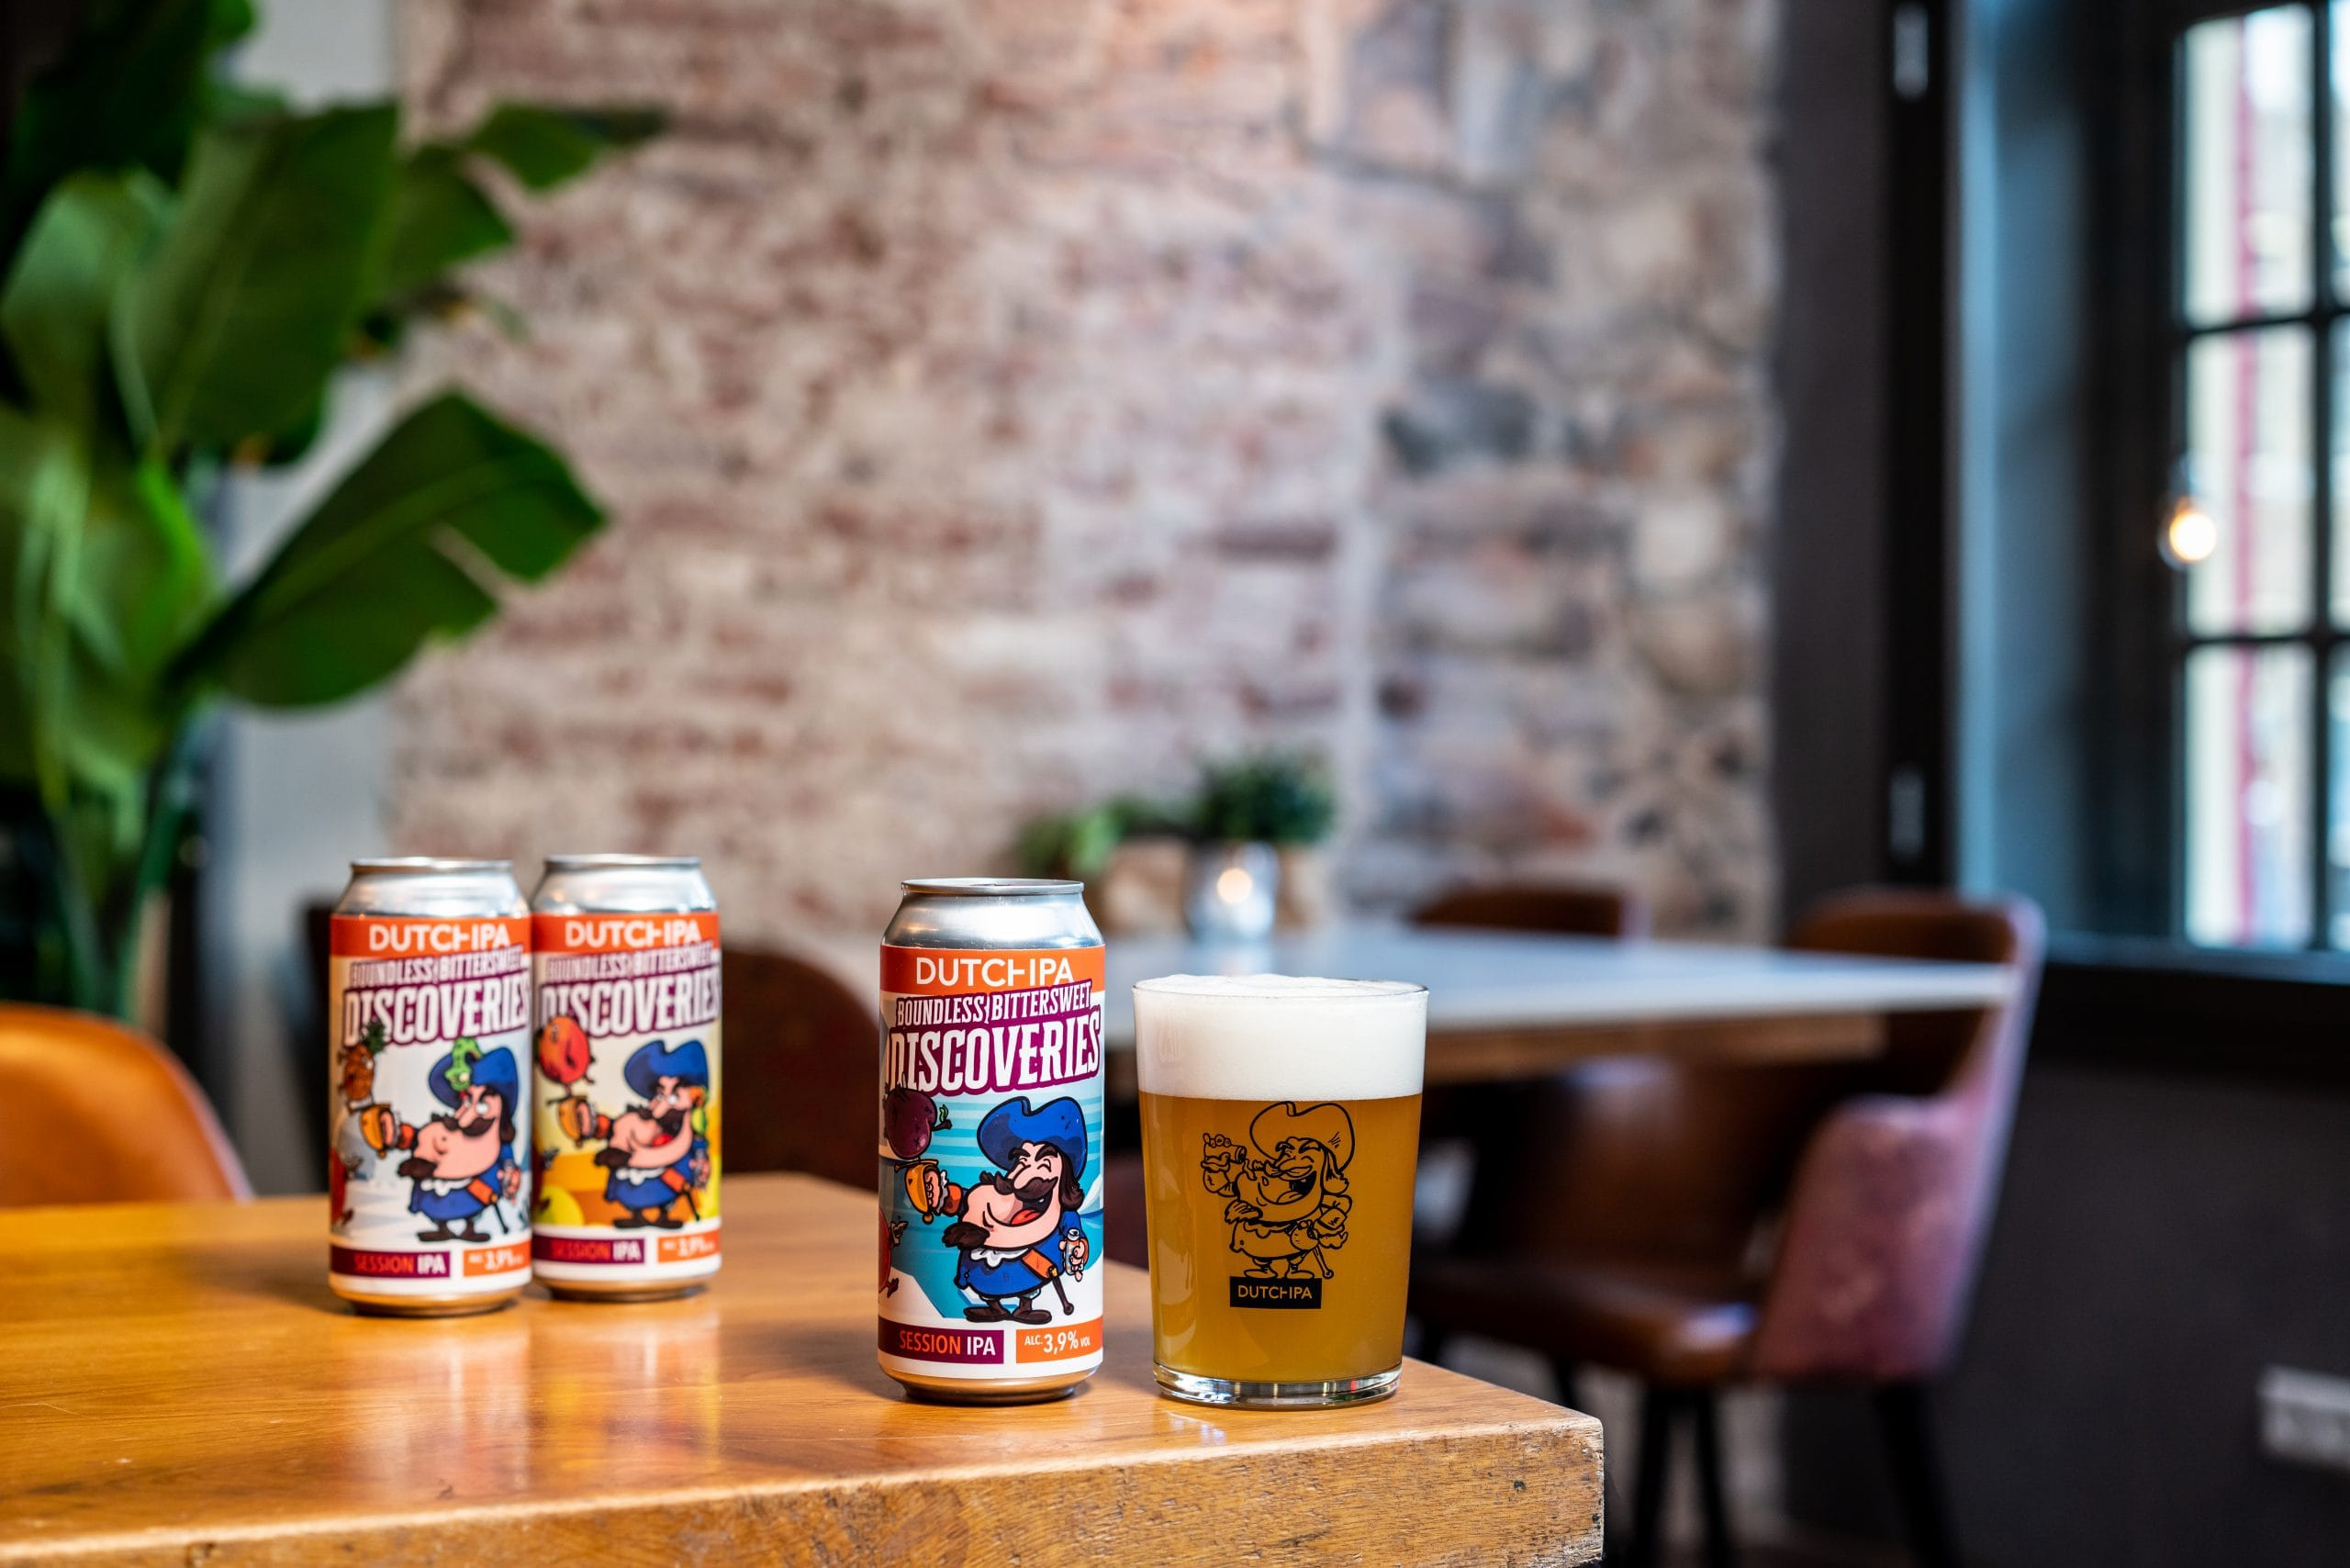 Special HP Eedition Session IPA launched!